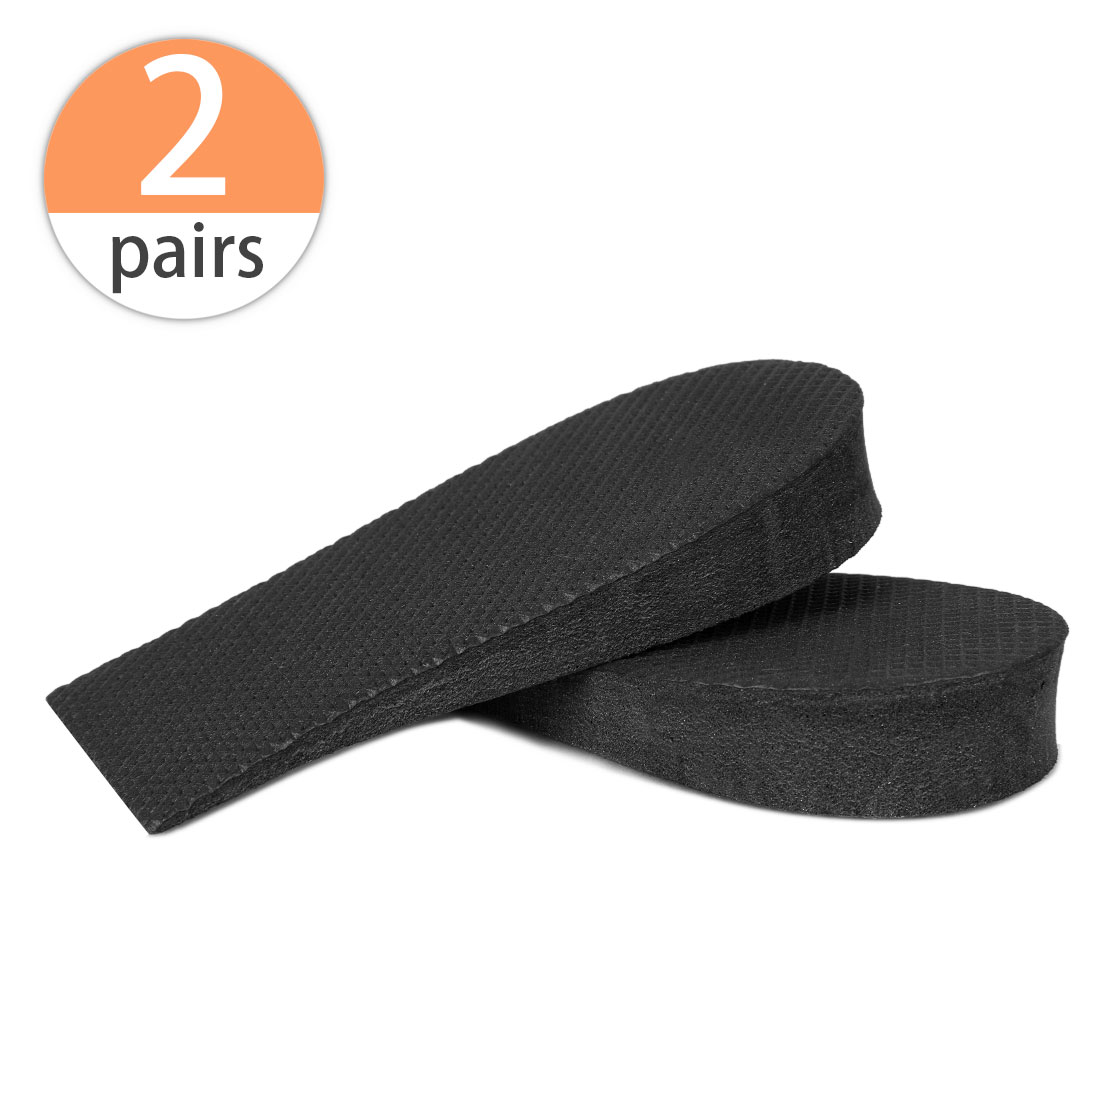 Letter Print 2cm Height Increase Insoles Heel Lift Shoes Pads 2 Pairs Black